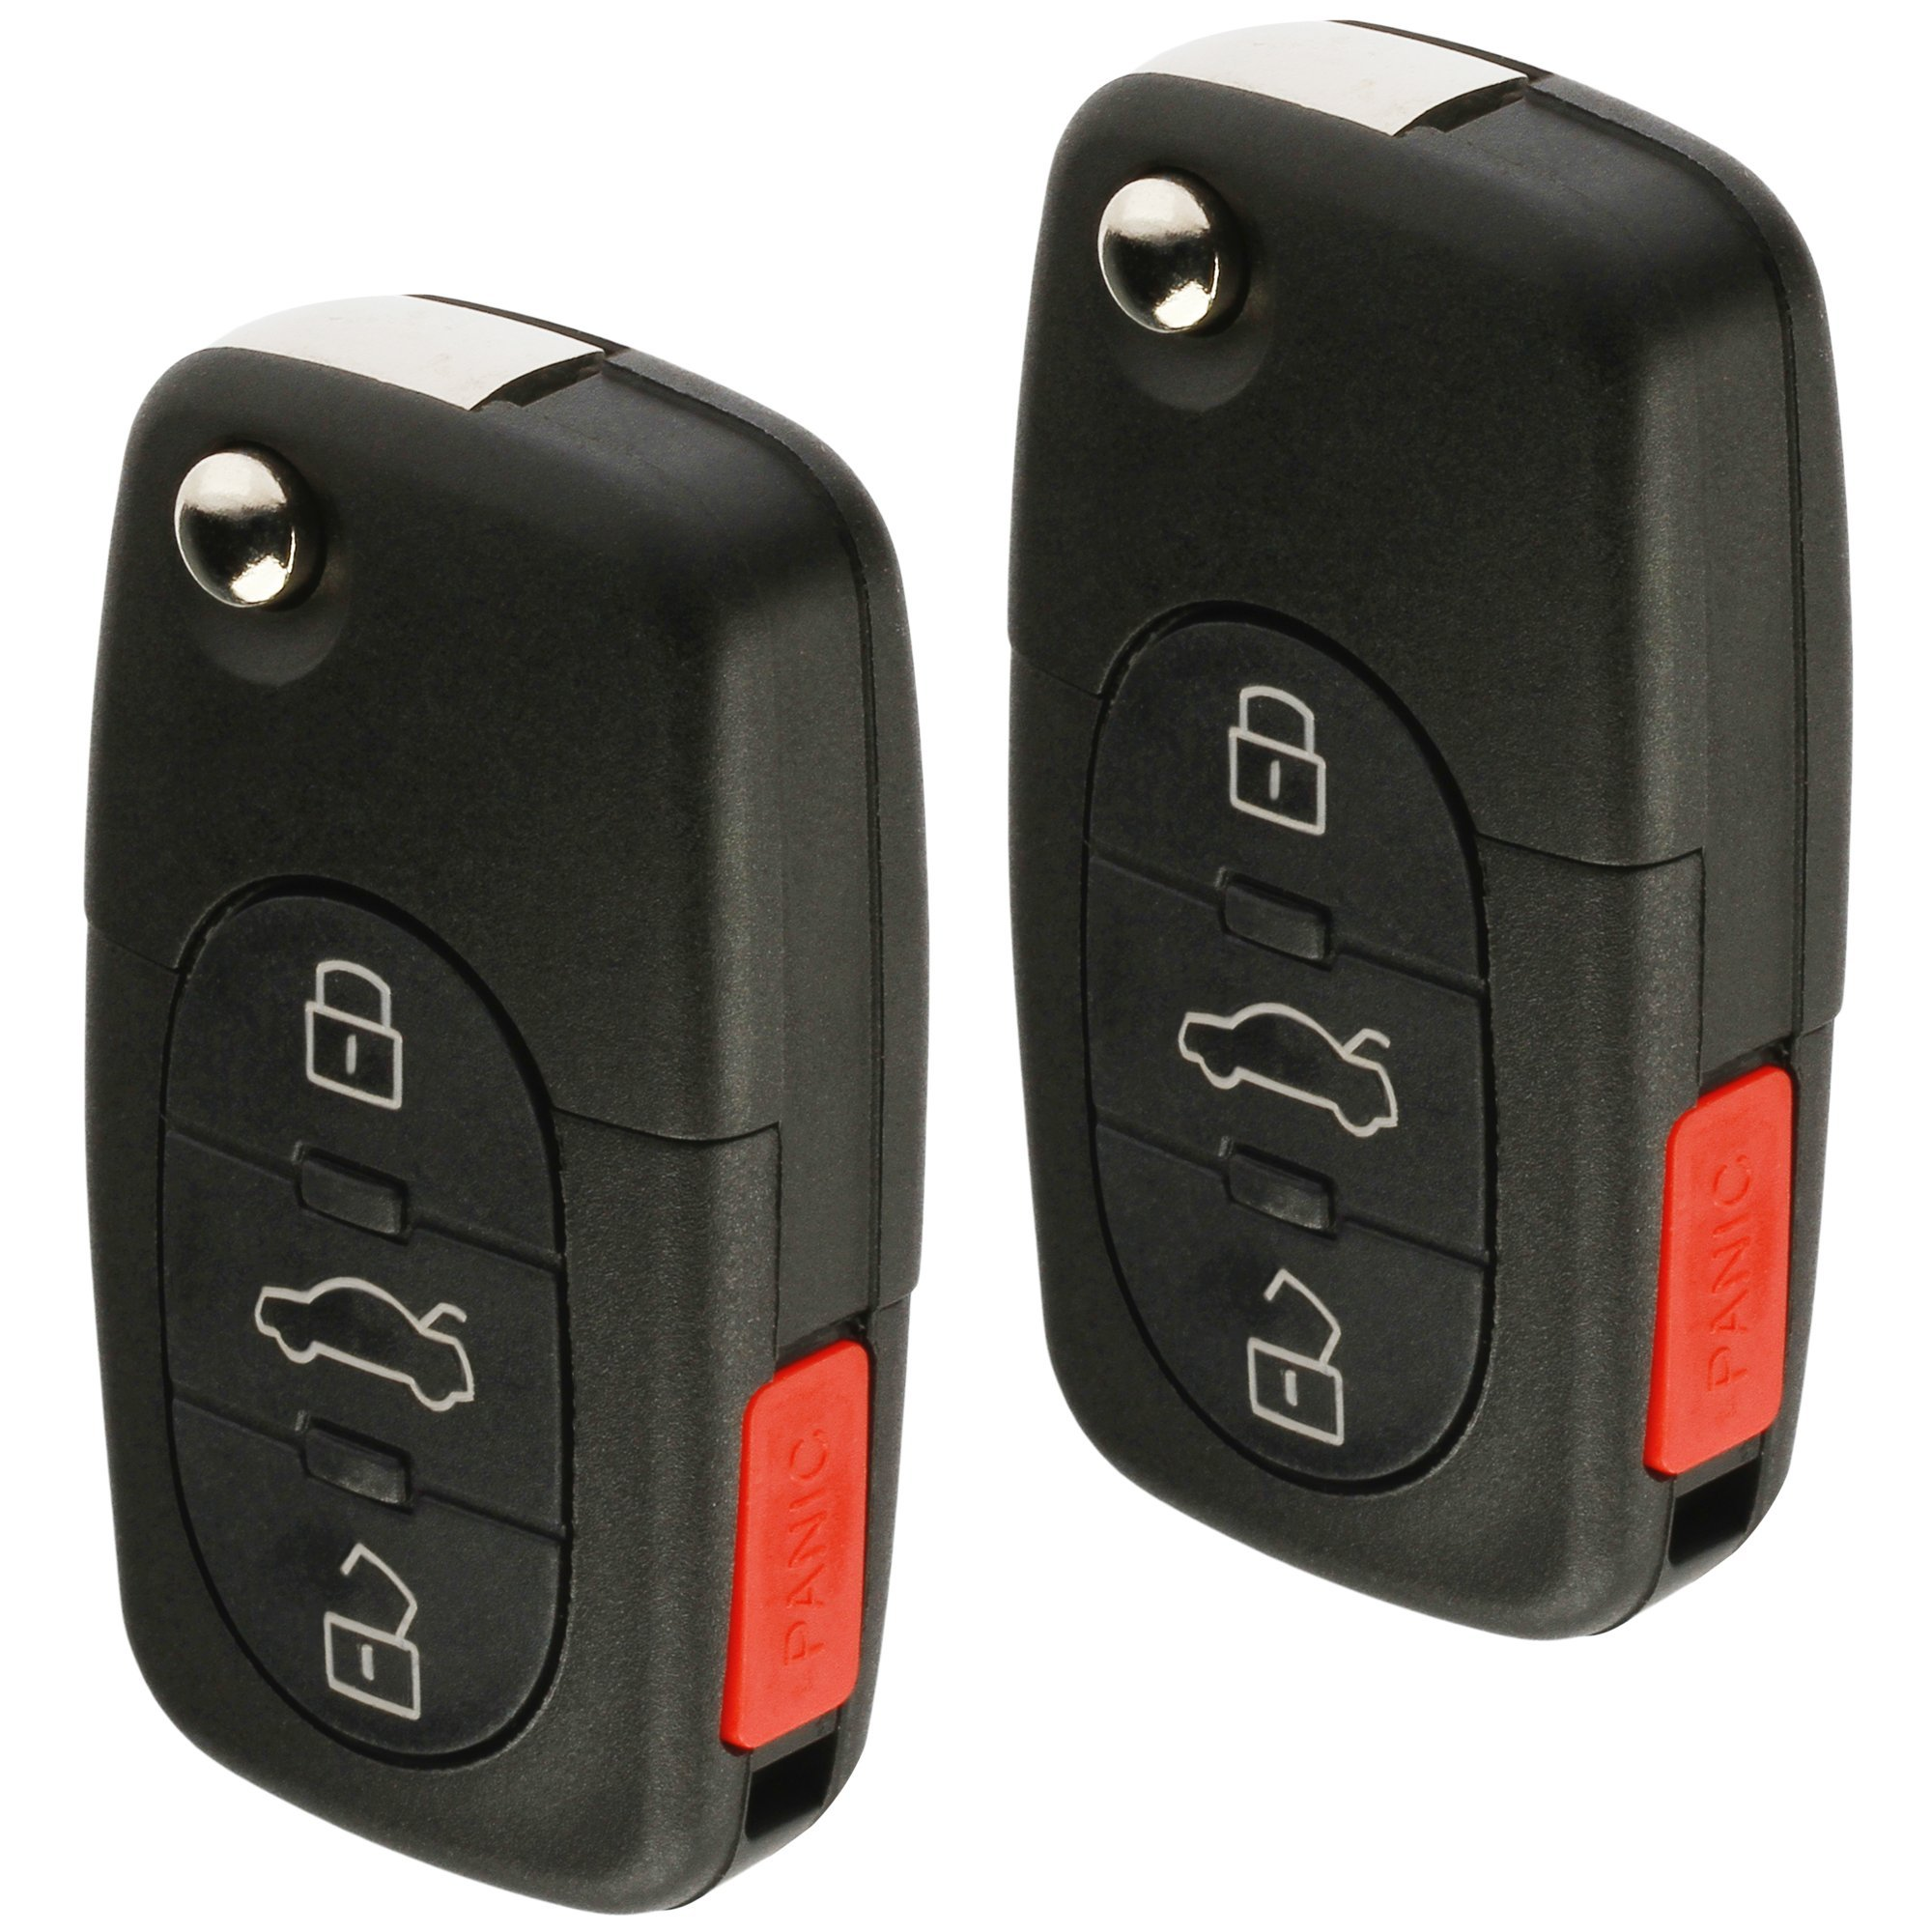 Replacement Keyless Entry Remote Flip Key Fob fits 1998 1999 2000 2001 VW Beetle, Golf, Jetta, Passat (HLO1J0959753F, Set of 2)